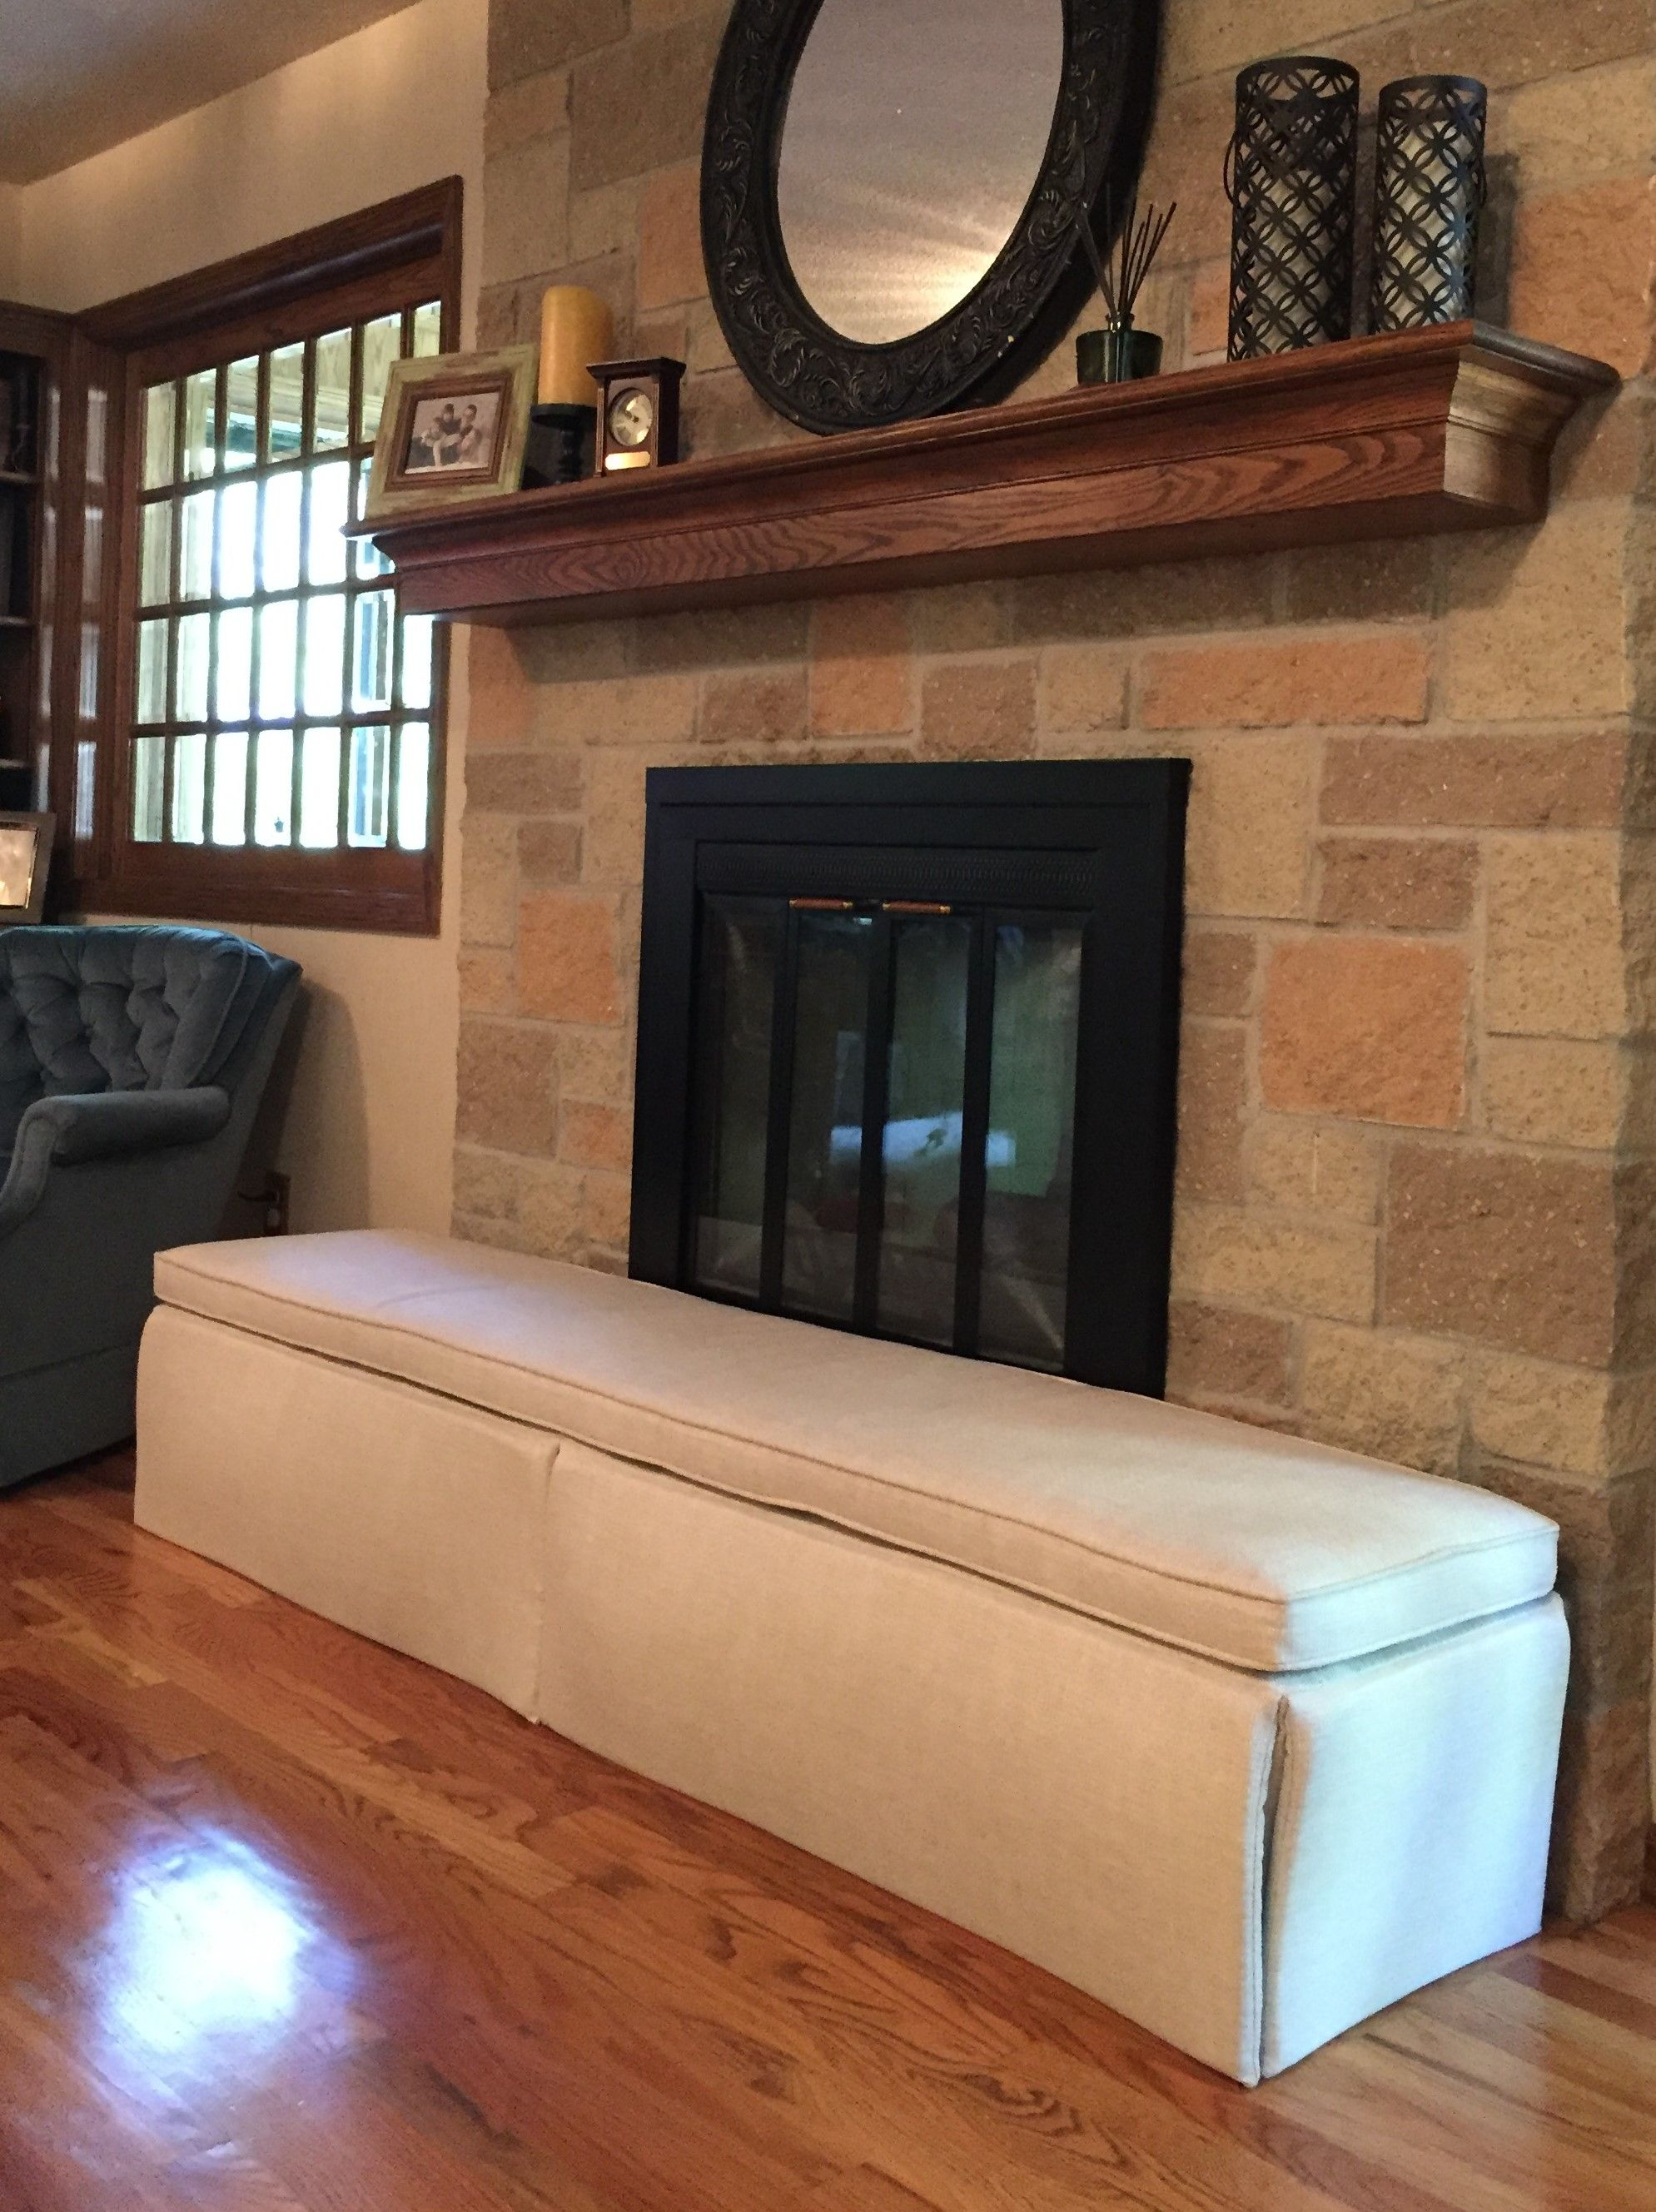 Custom Designed For Childproofing The Fireplace Hearth